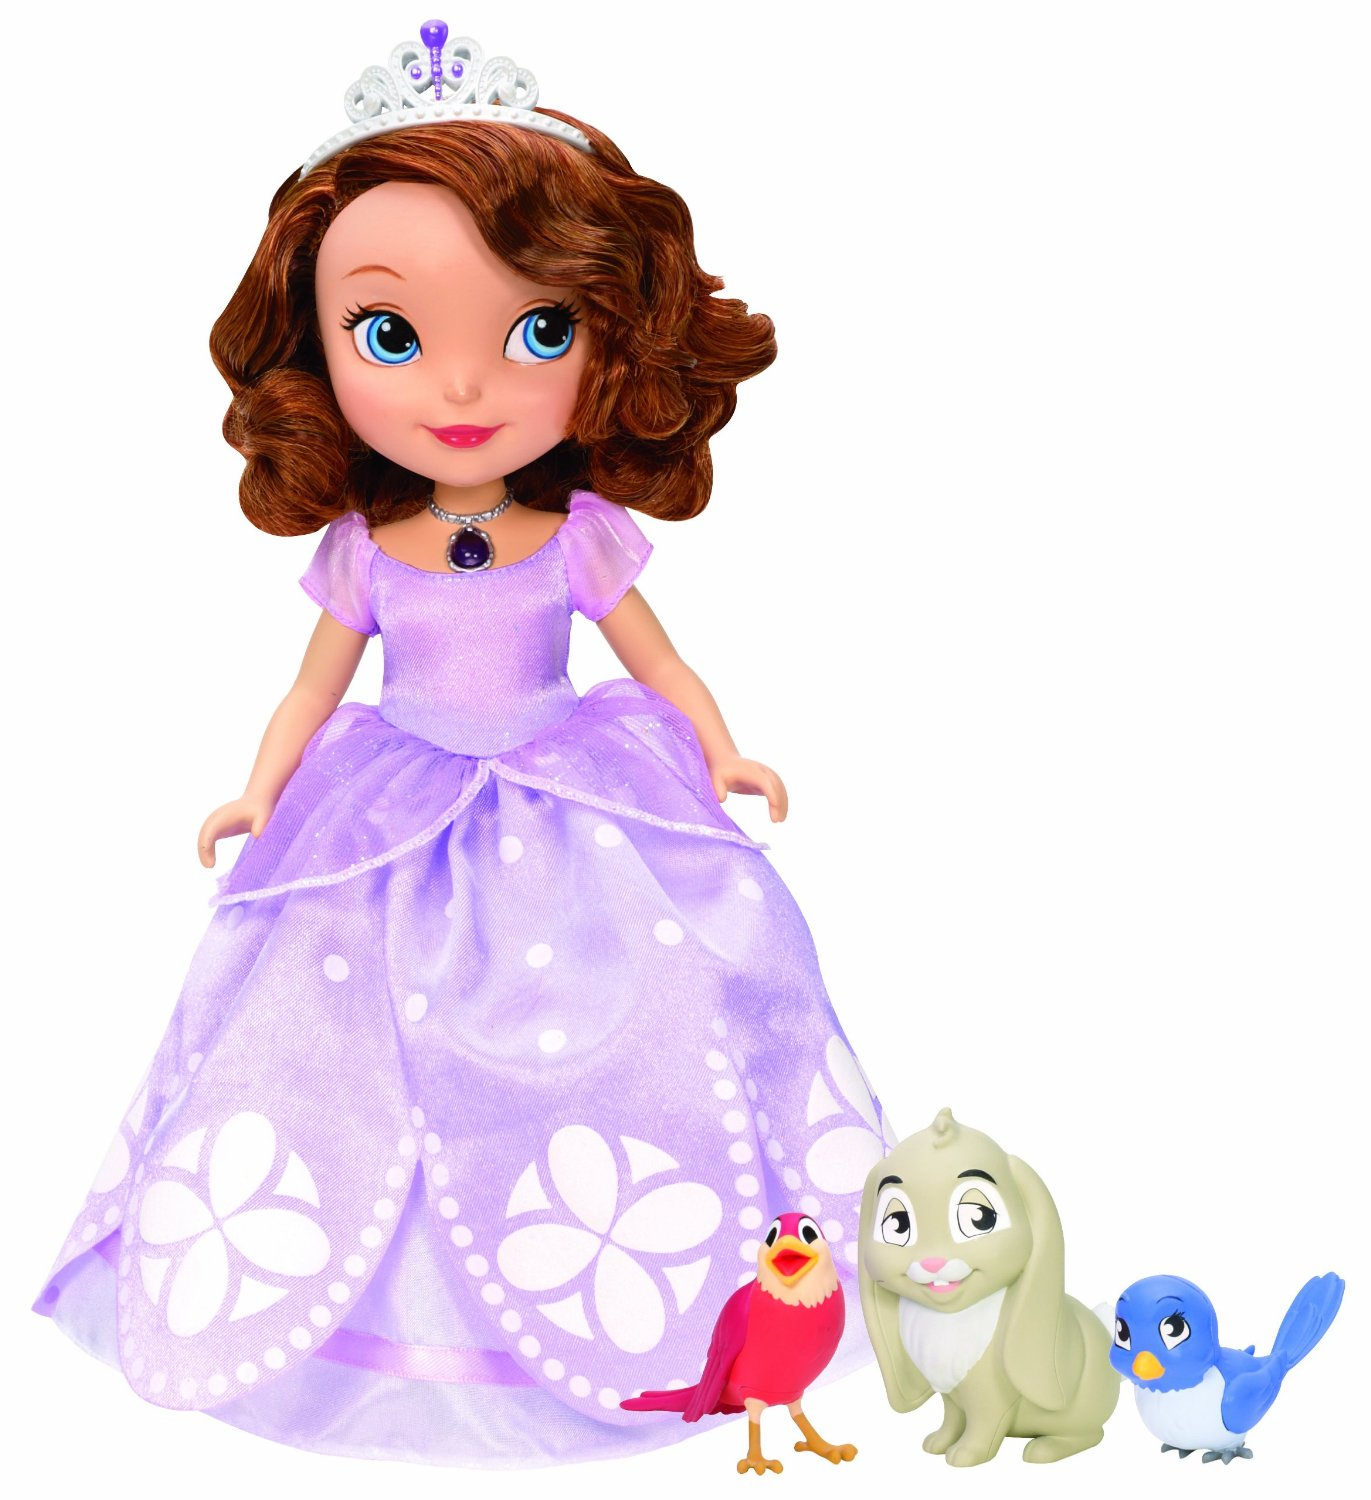 Disney princess sofia the first commit error